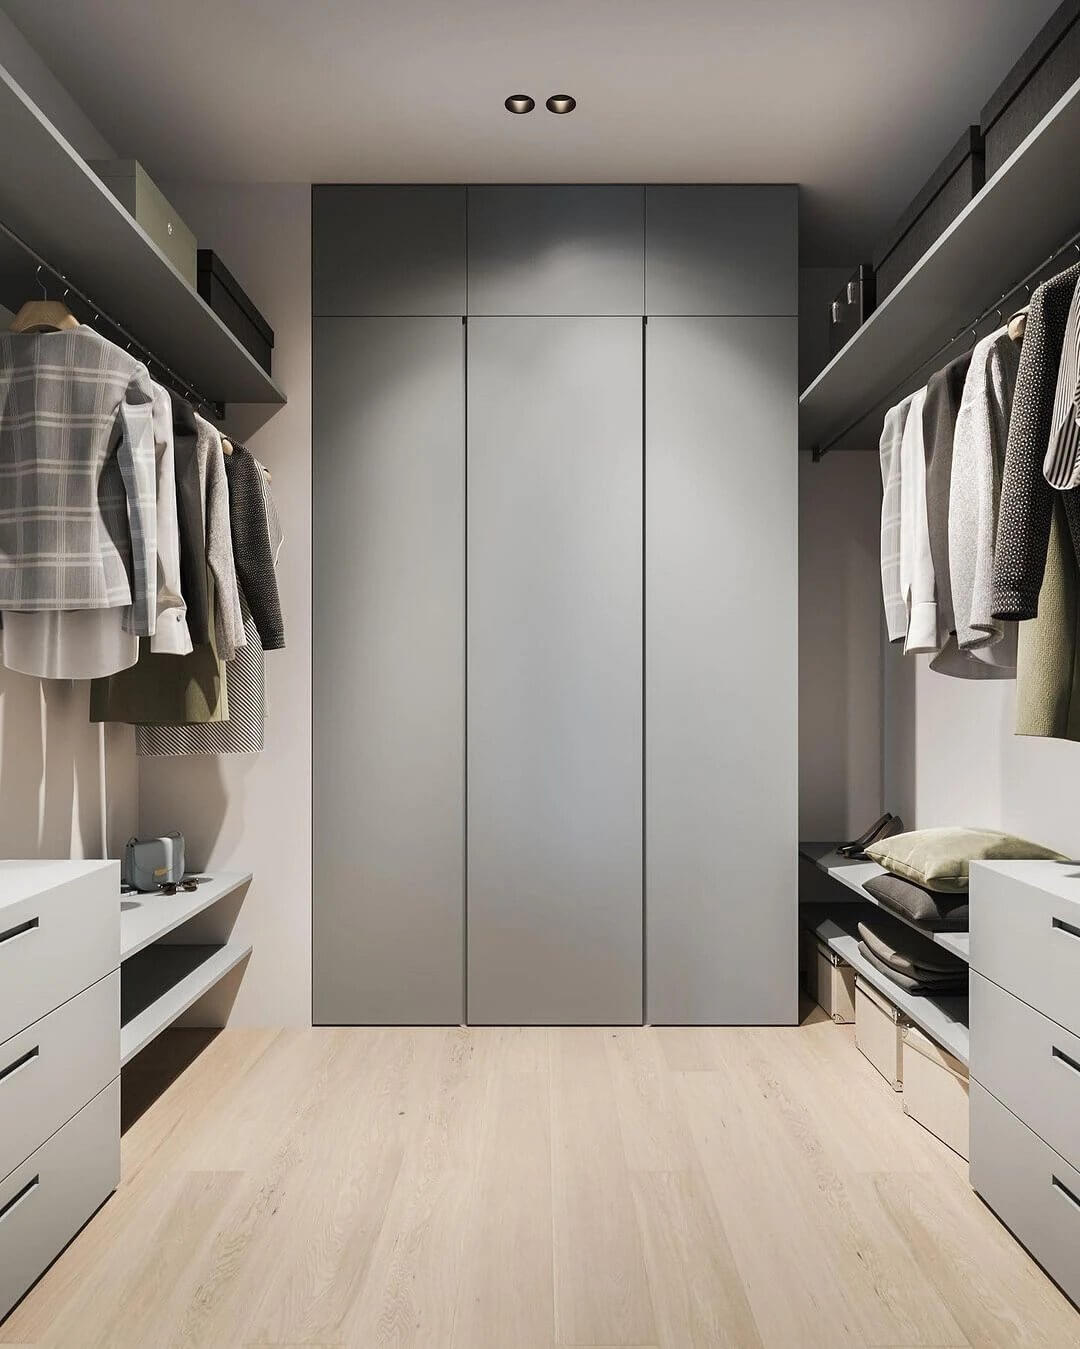 24. An interior built on minimalism in shades and details